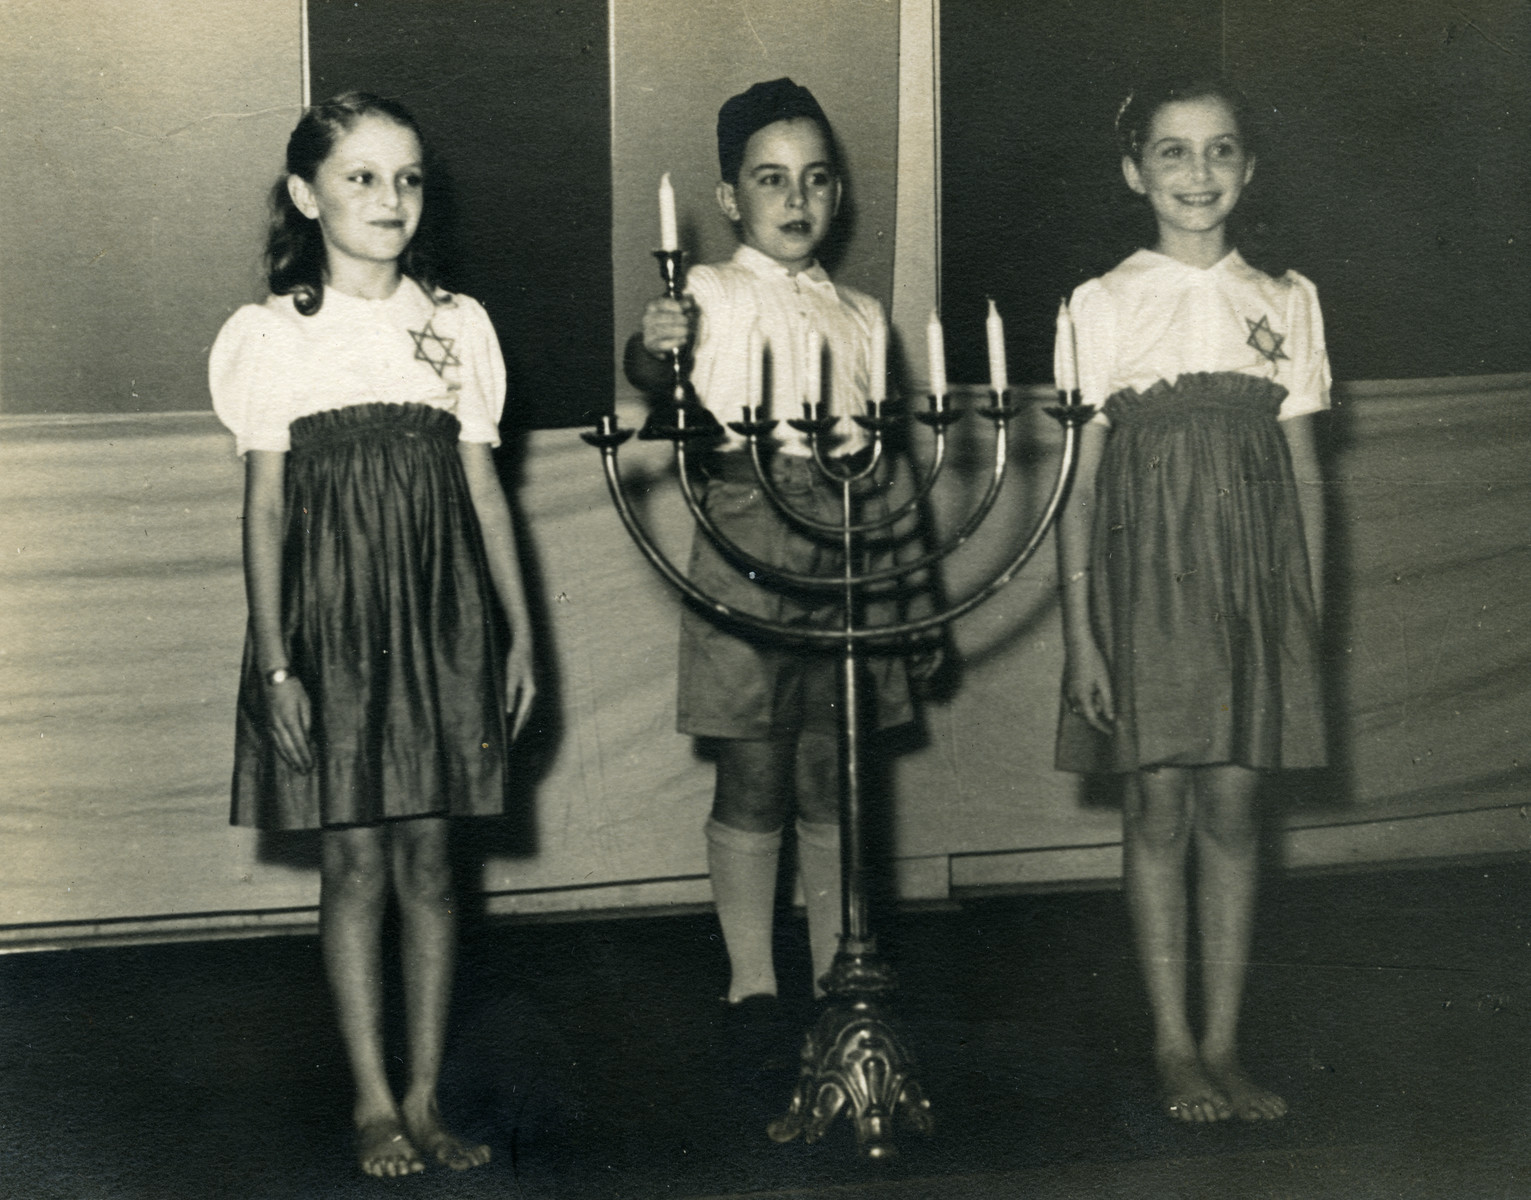 Jewish children light a menorah in a community Hanukkah celebration in Manila.  From left to right are Lotte Cassel, Werner Eicholtz and Margot Cassel.